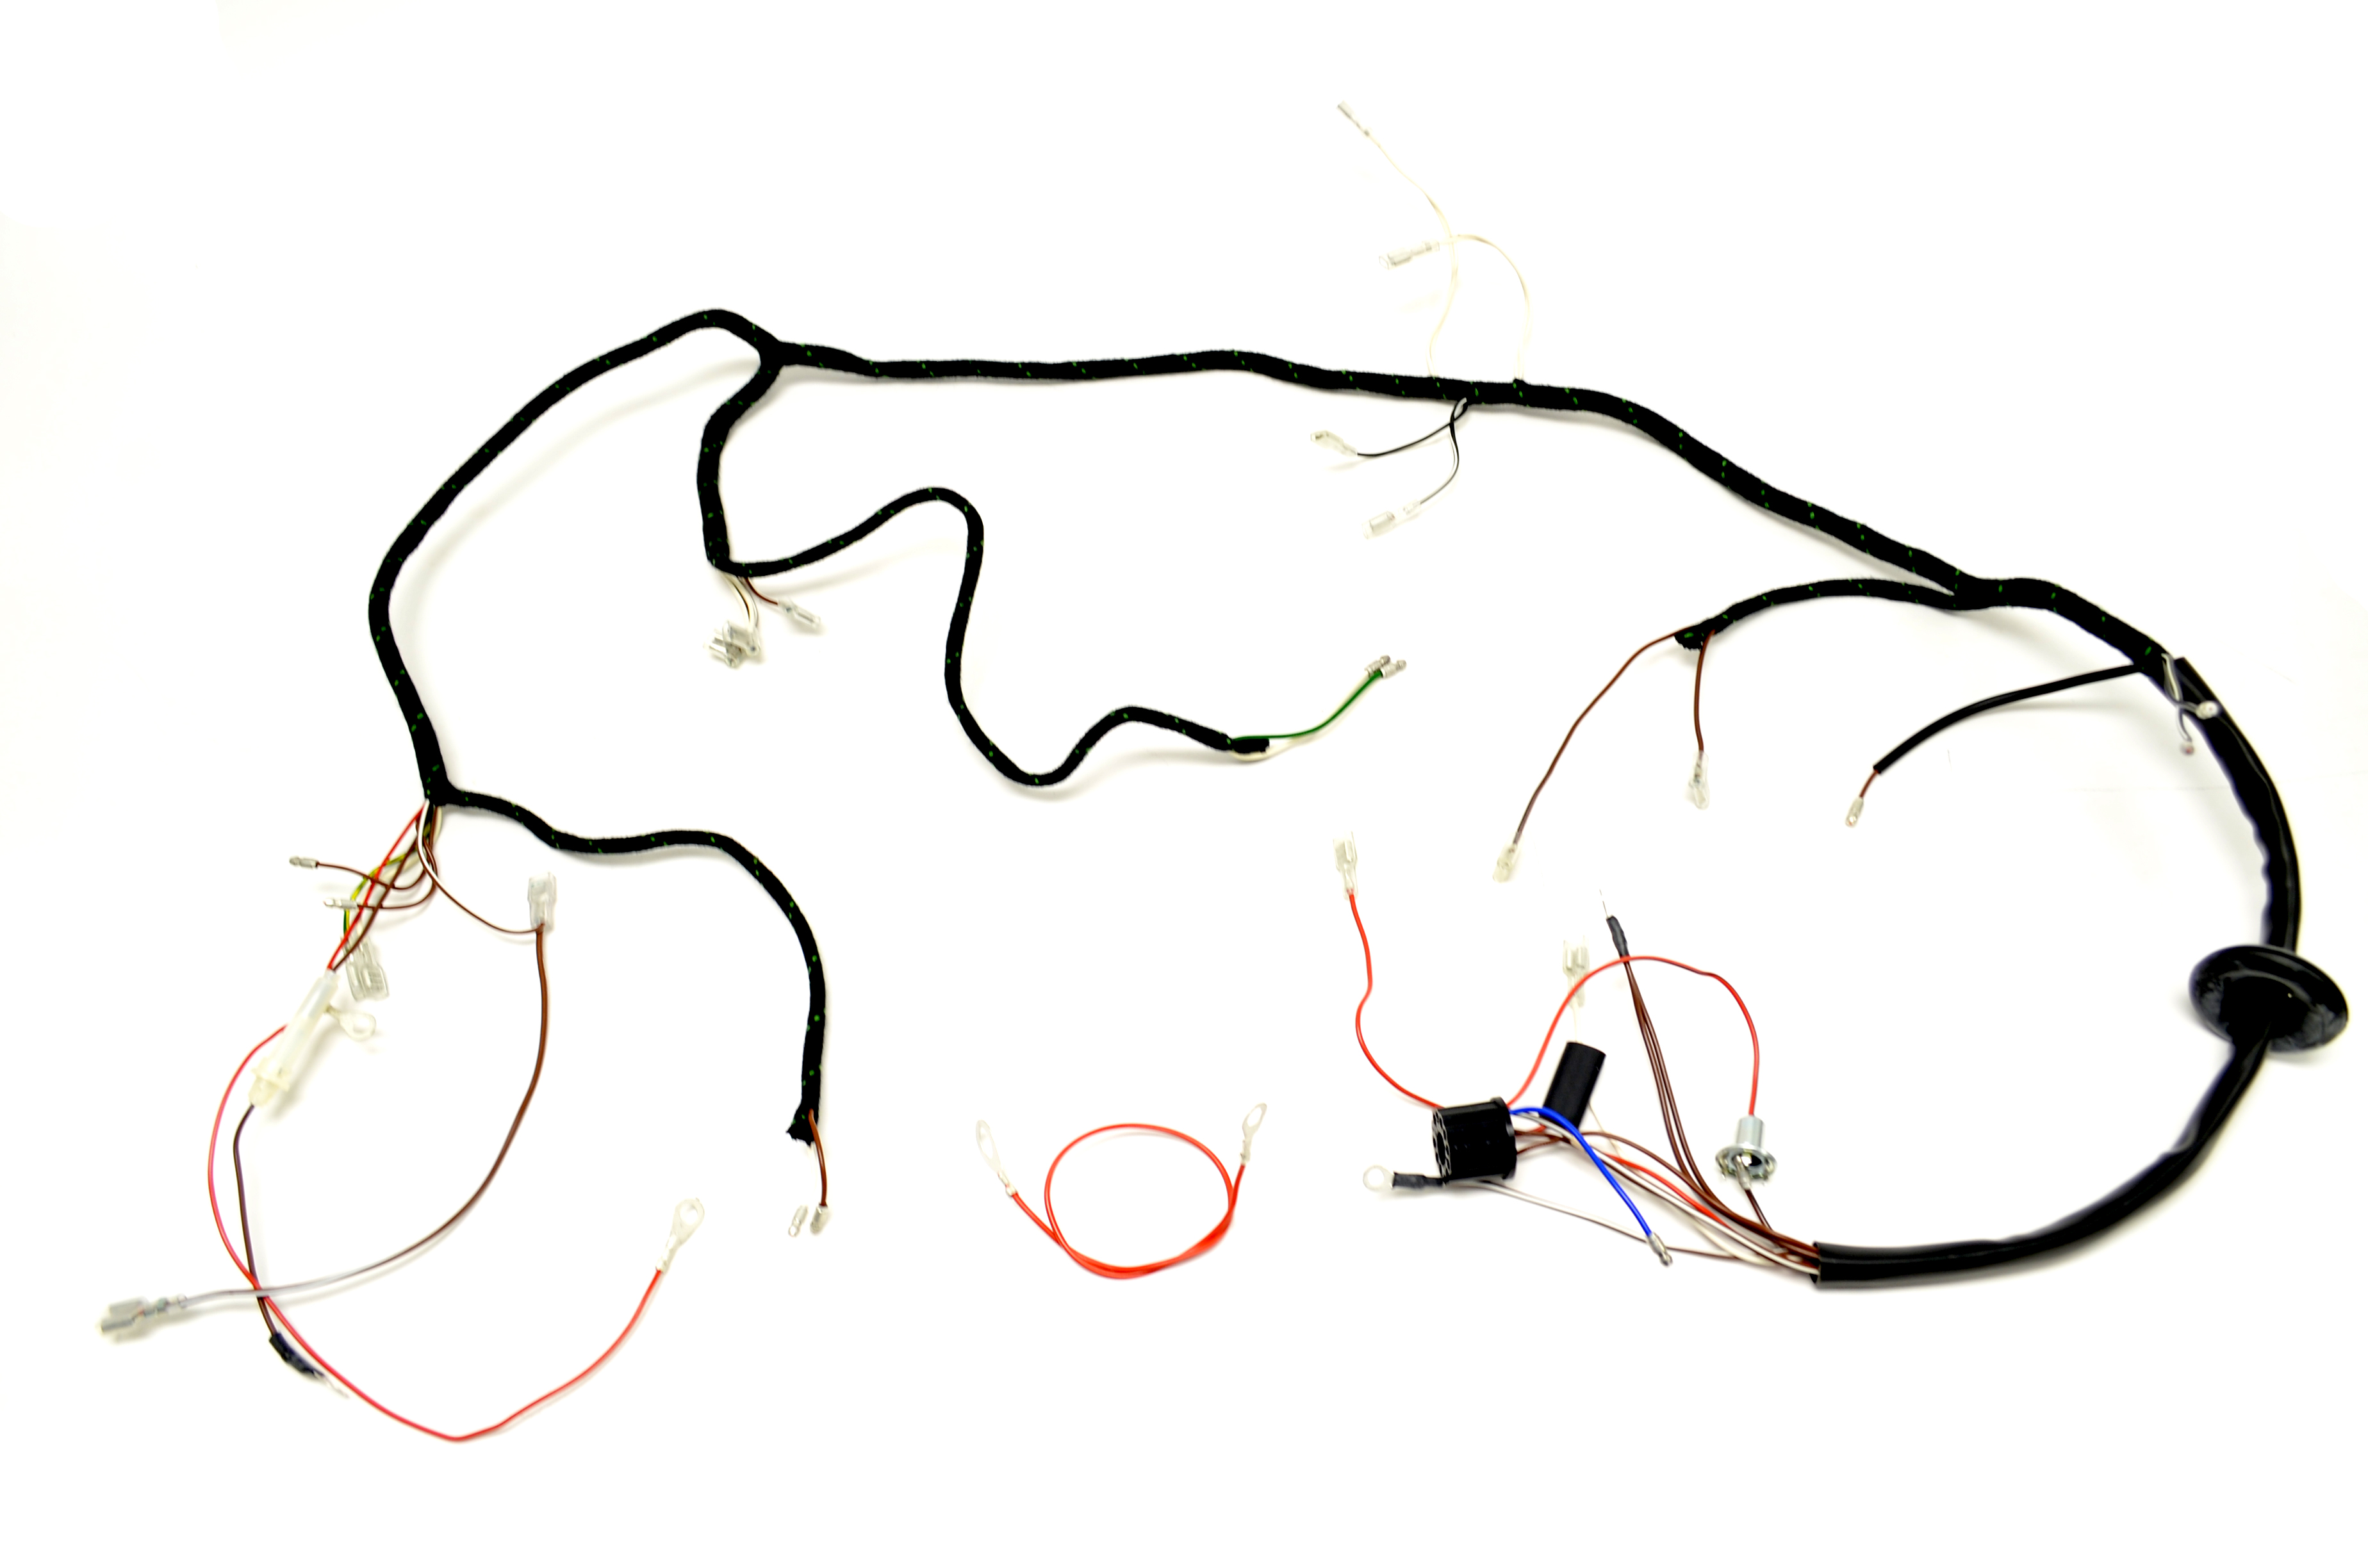 Triumph 1967 T90 T100 T120 Tr6 Uk Made Quality Wiring Harness H025 A Lighting Switch Fits Bonneville Tiger And Daytona With Ignition In Side Panel Light Headlight Perfect For Restorations This High